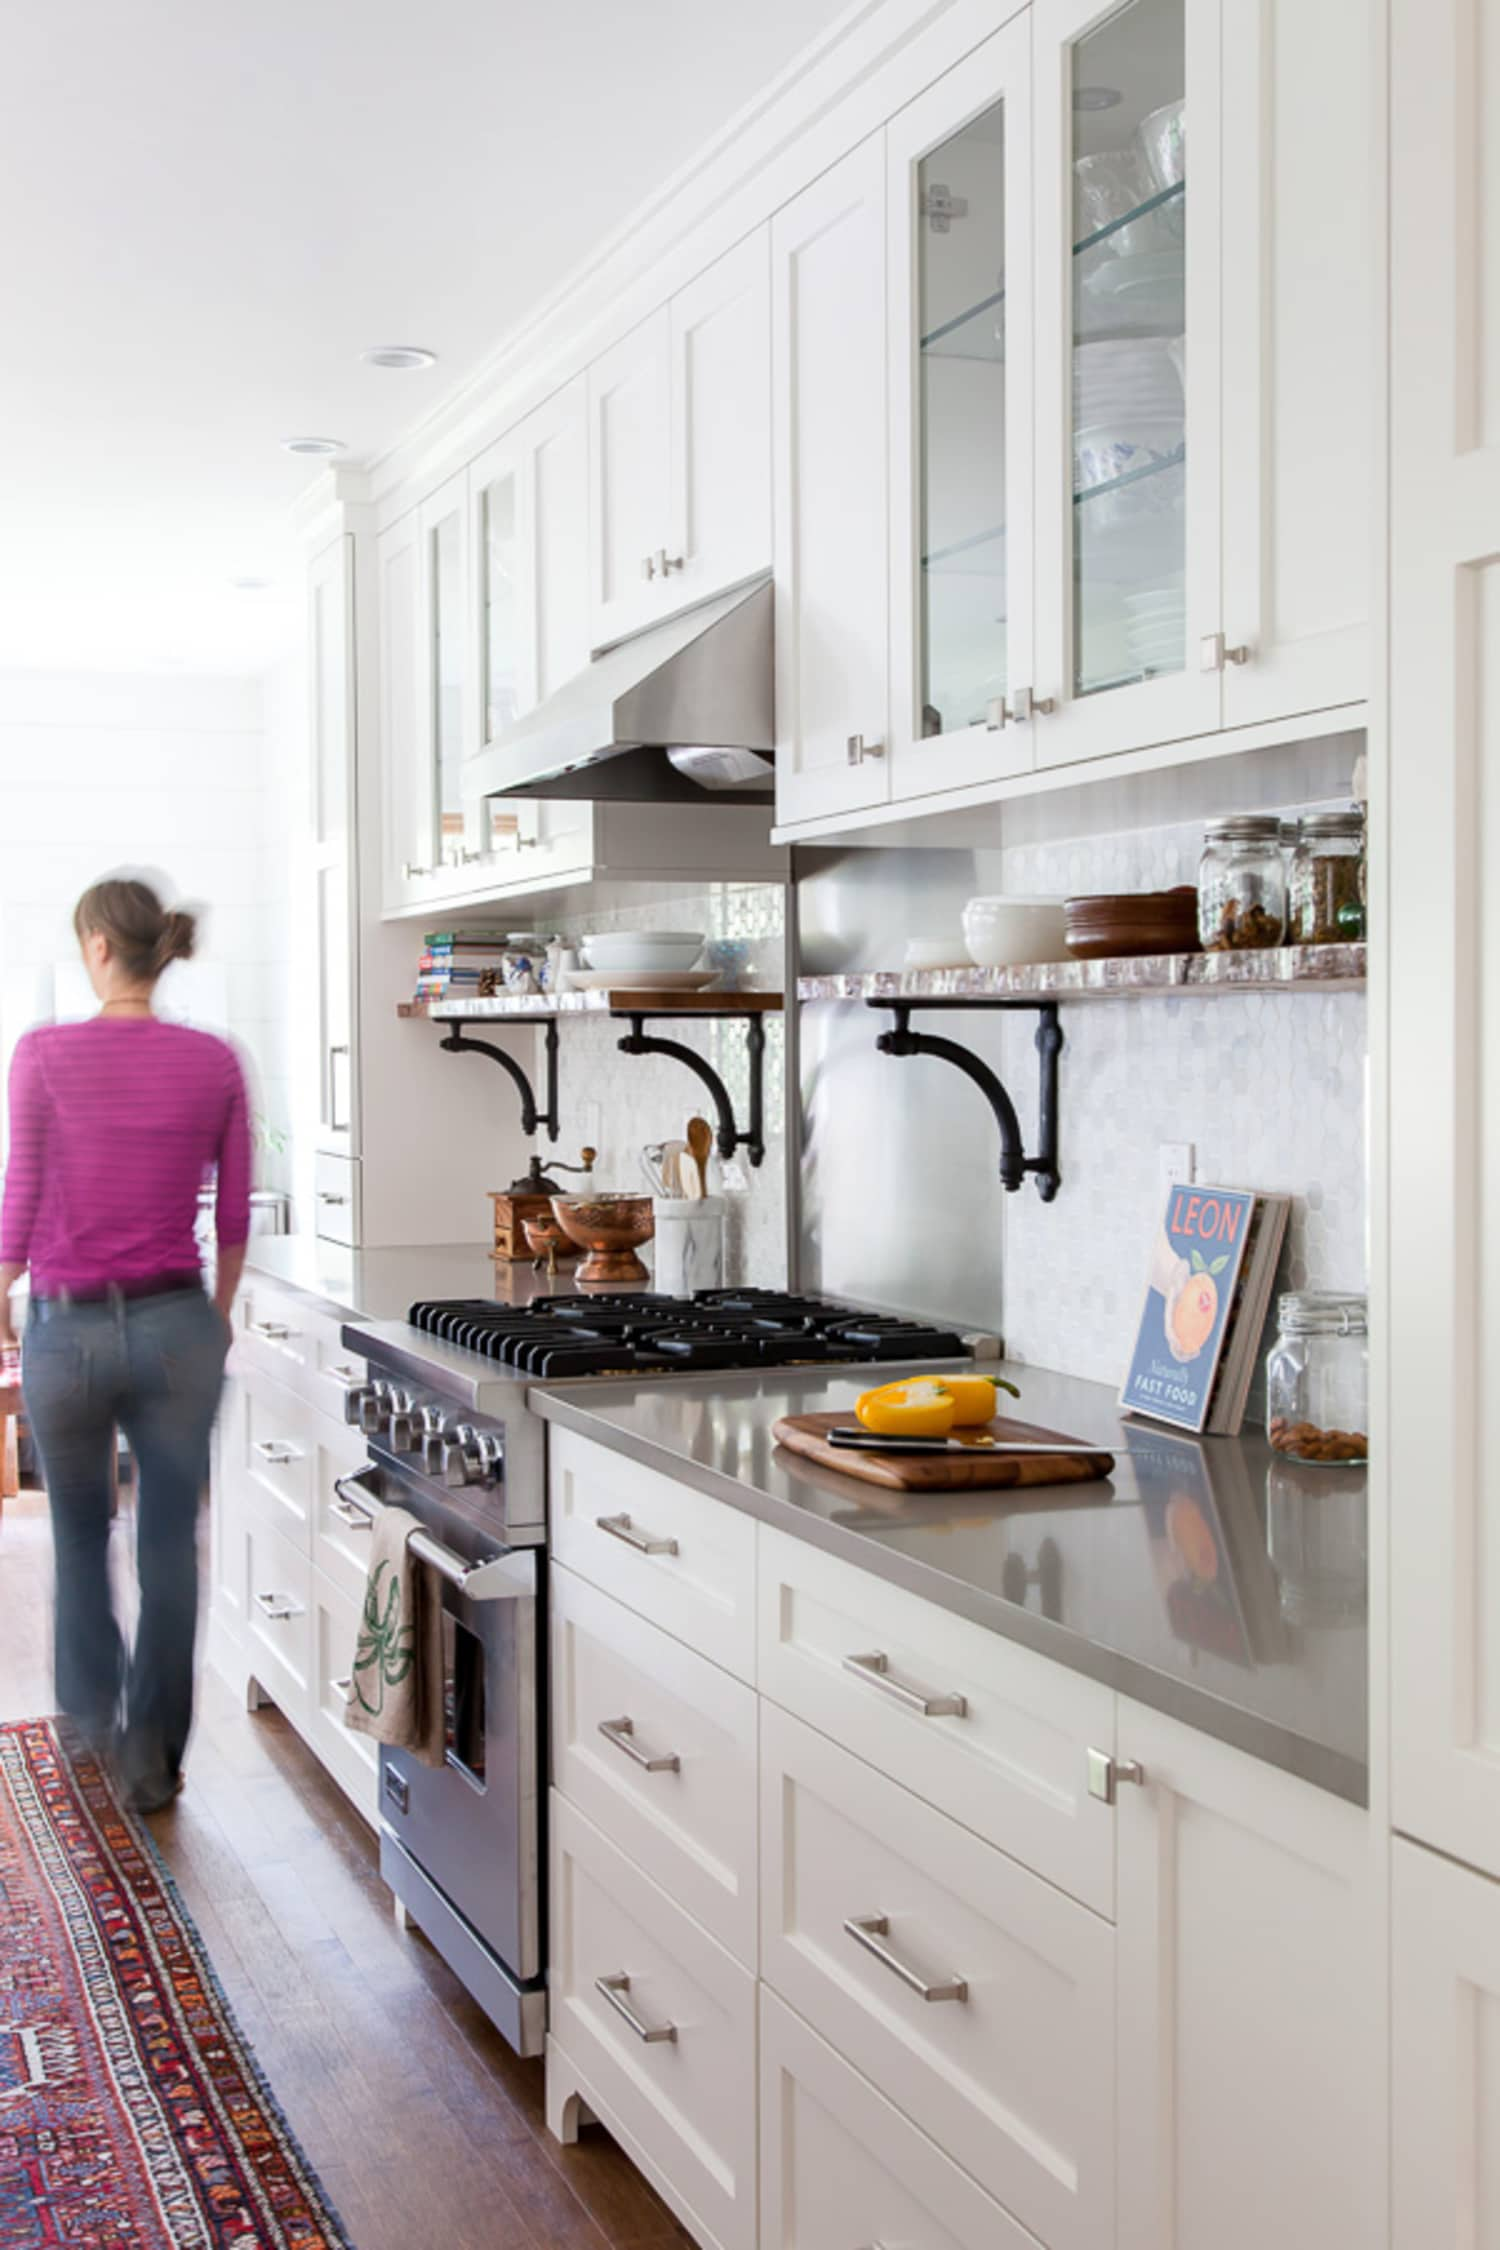 The Smartest Way to Add More Storage to Any Kitchen